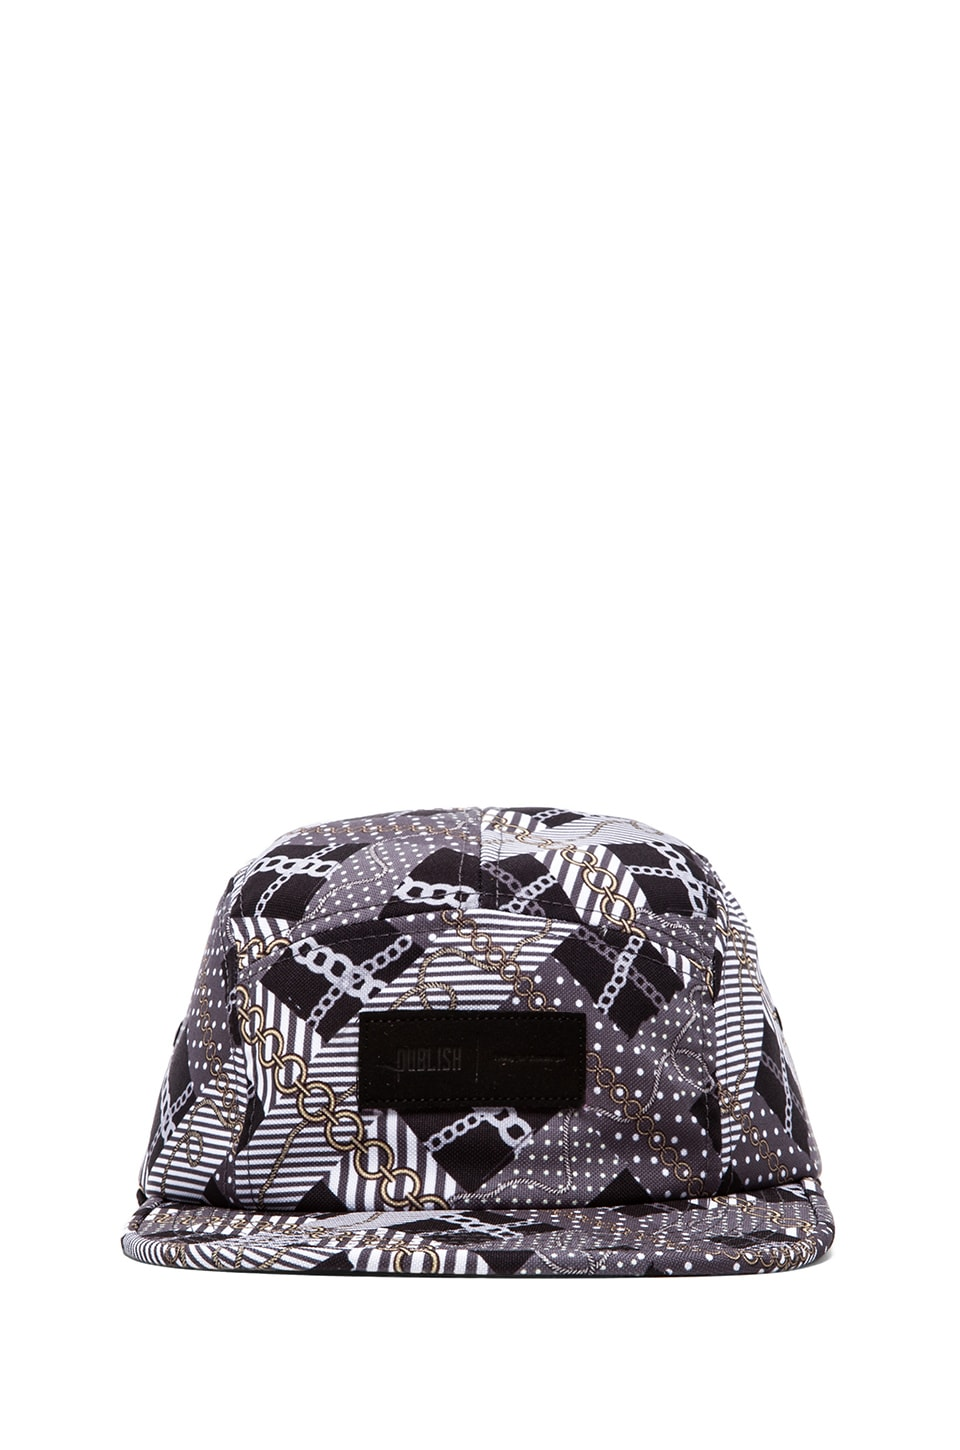 Publish Nestor Hat in Black